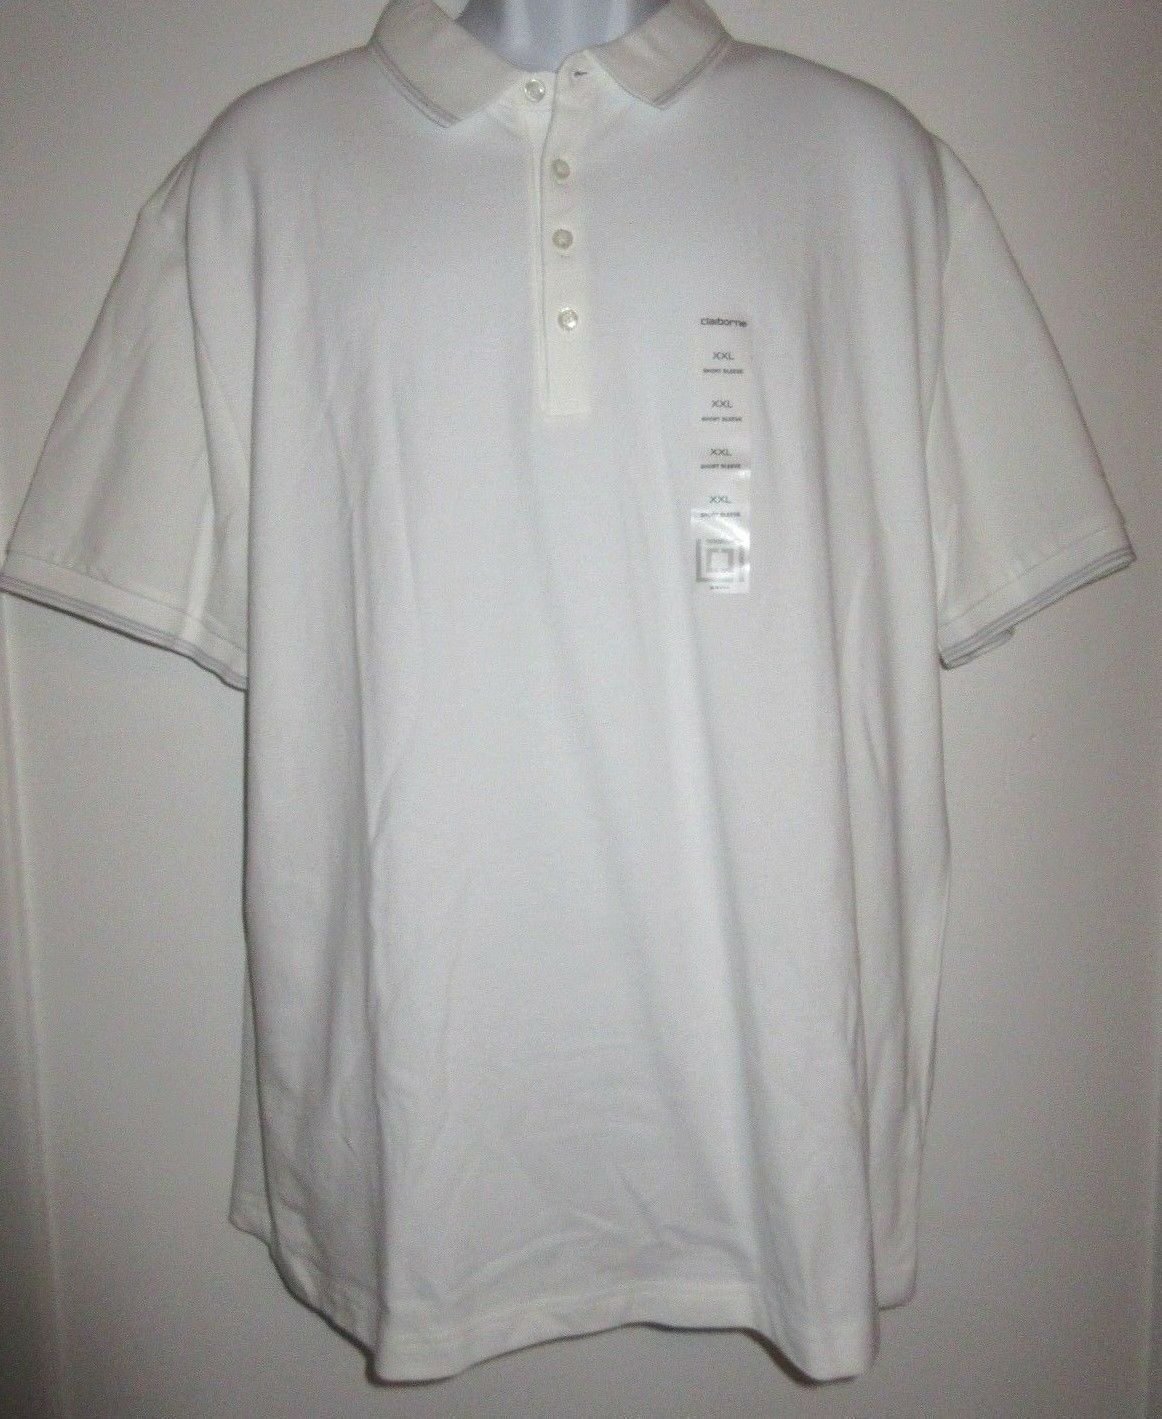 MEN'S NEW WITH TAGS LIZ CLAIBORNE WHITE POLO SHIRT XXL